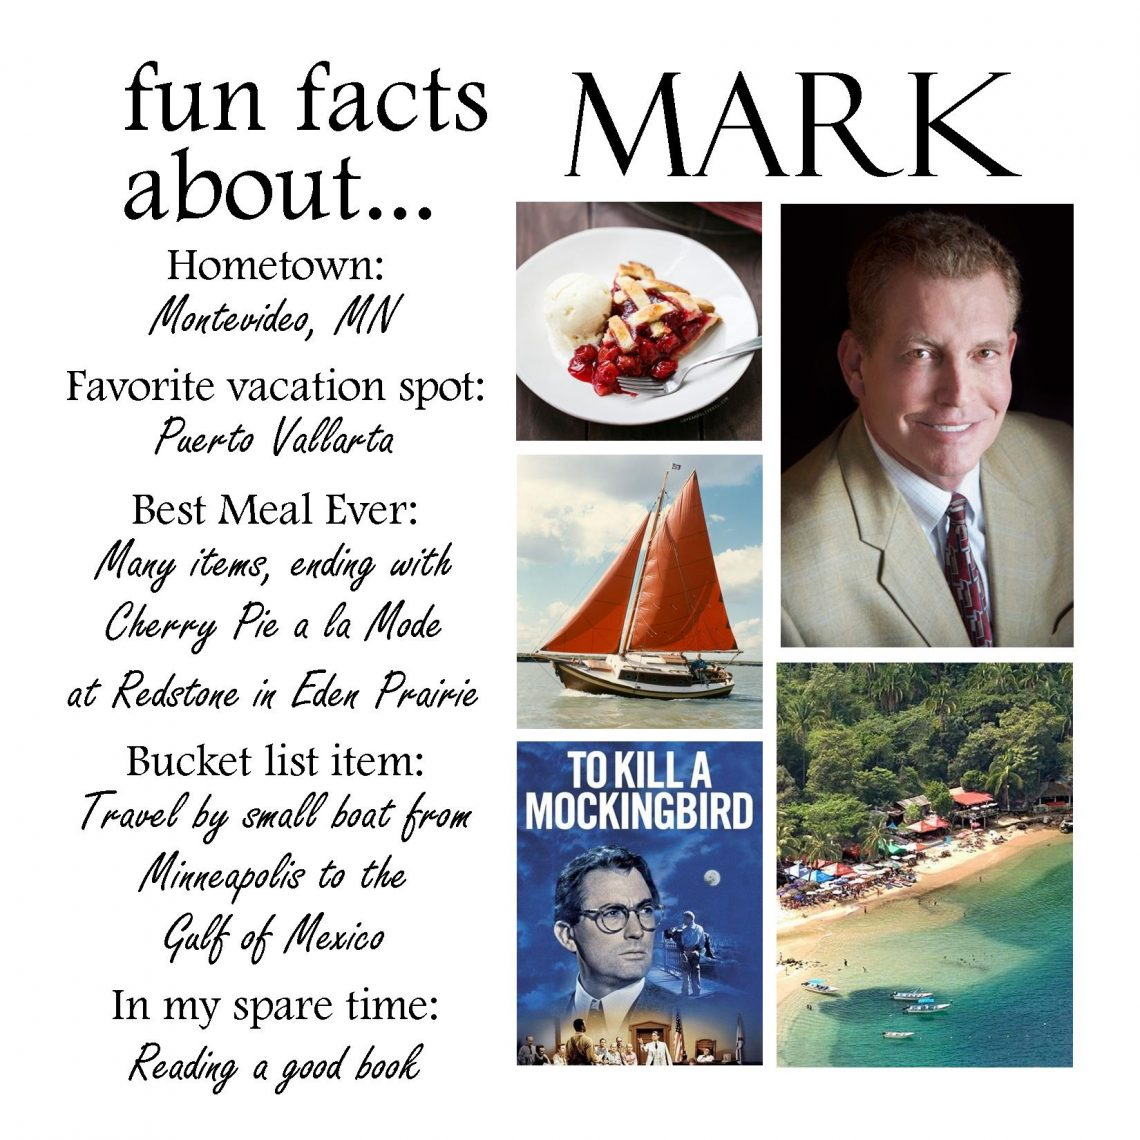 mark fun fact - Copy